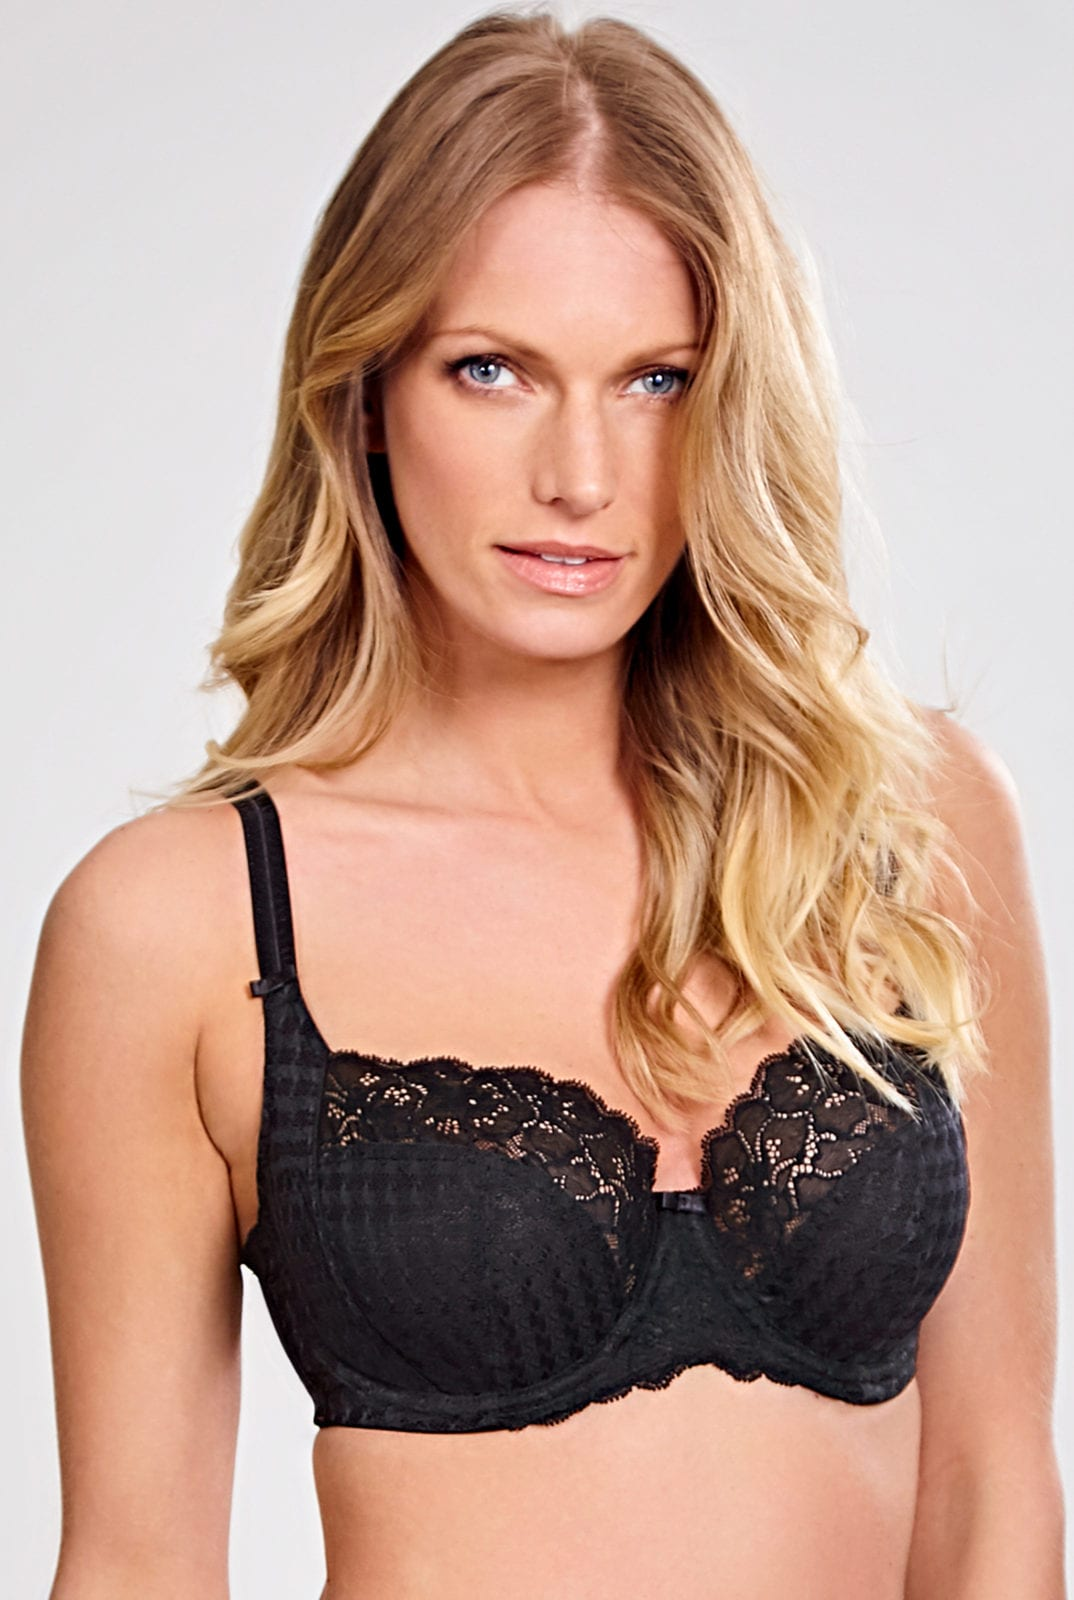 Базовое белье 7285_013_Envy Balconnet Bra Black Front Trade 1